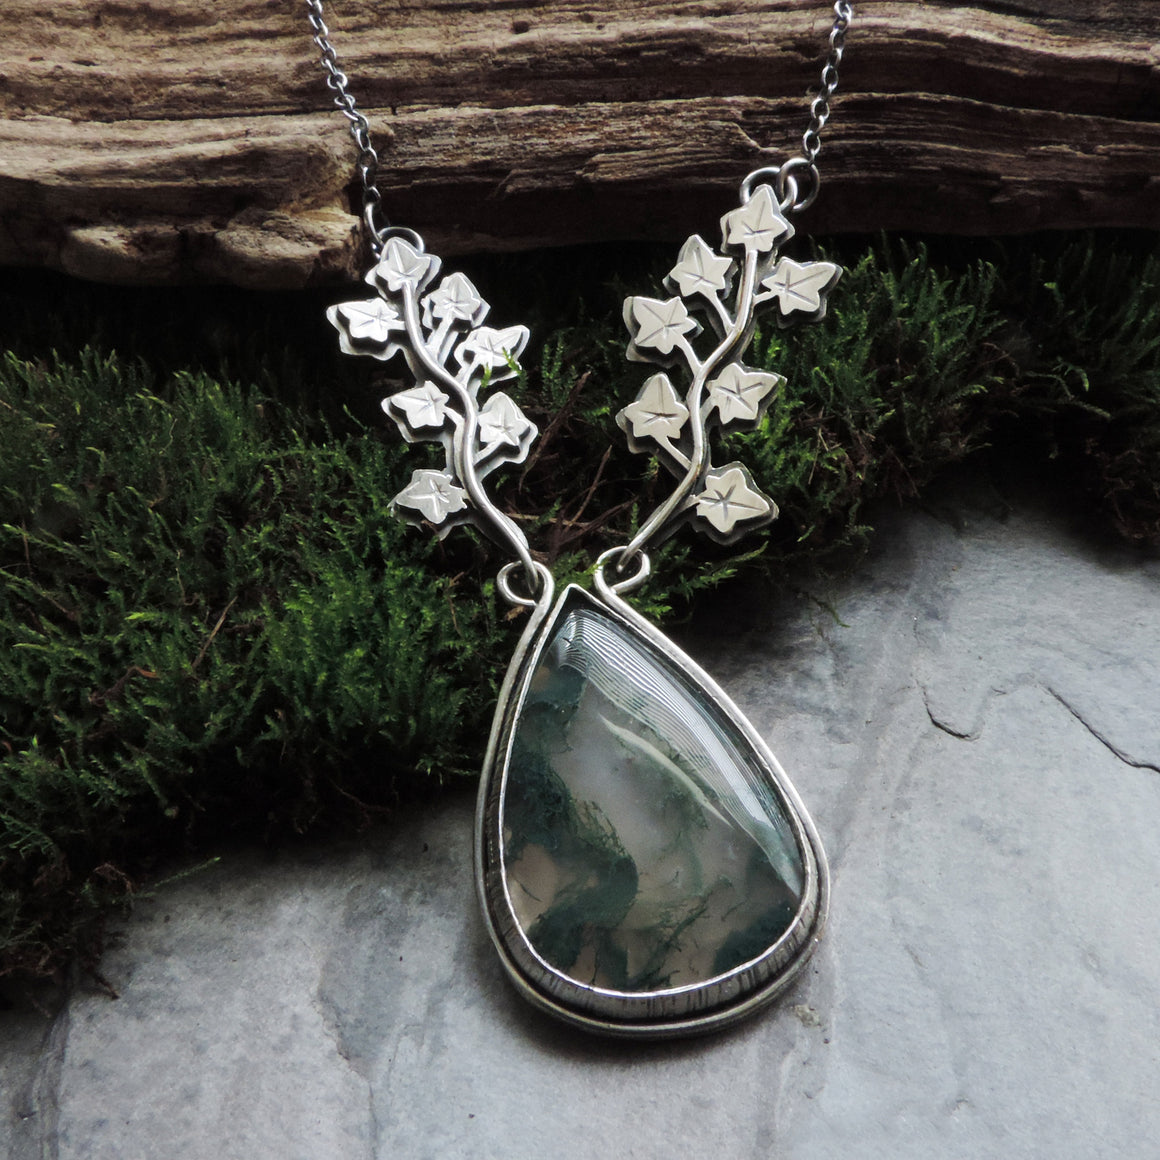 English Ivy Necklace with Moss Agate Stone